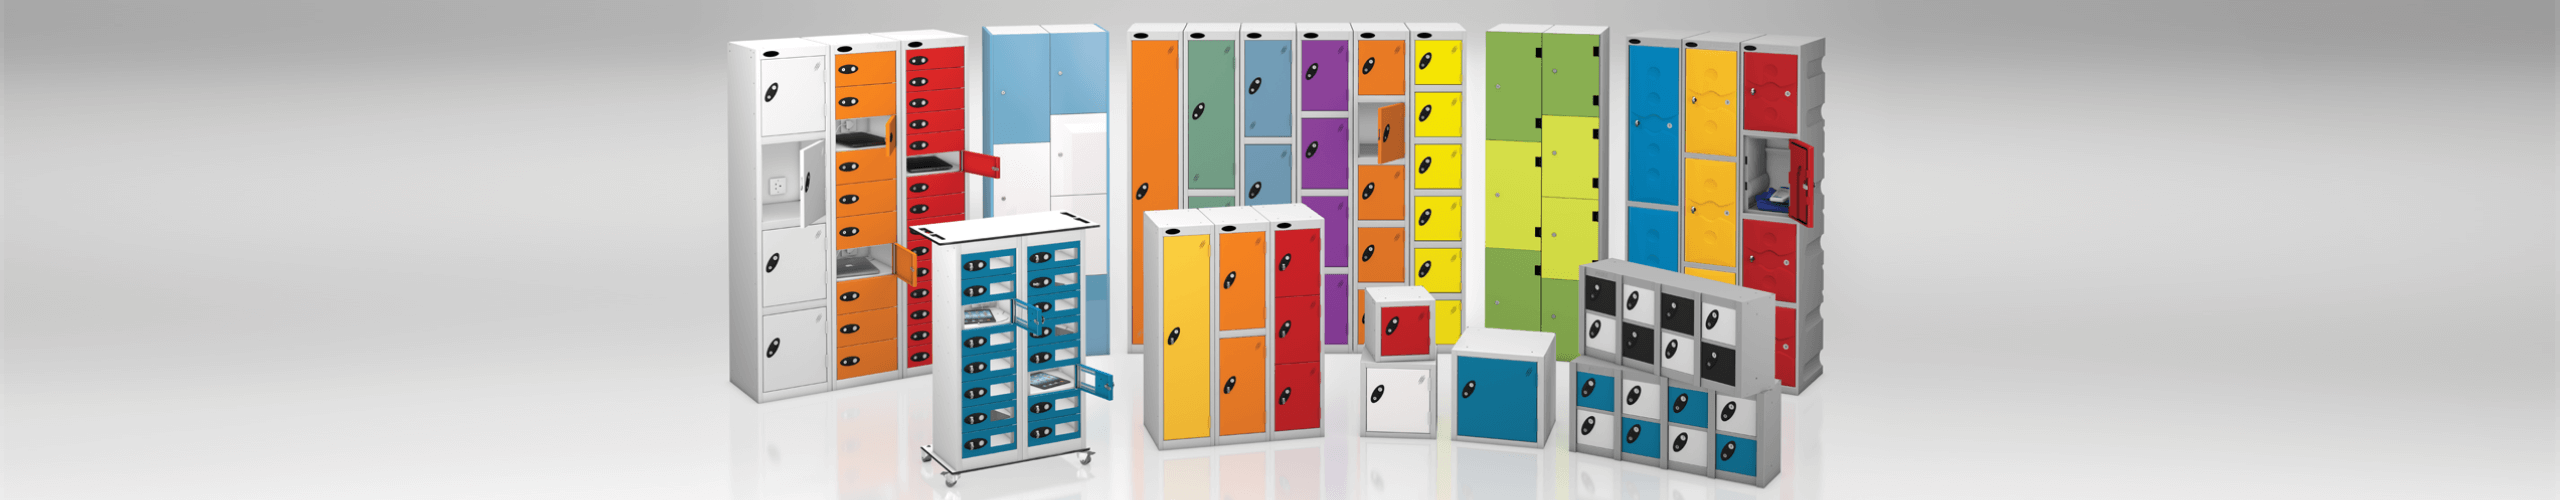 Probe Lockers Header Image